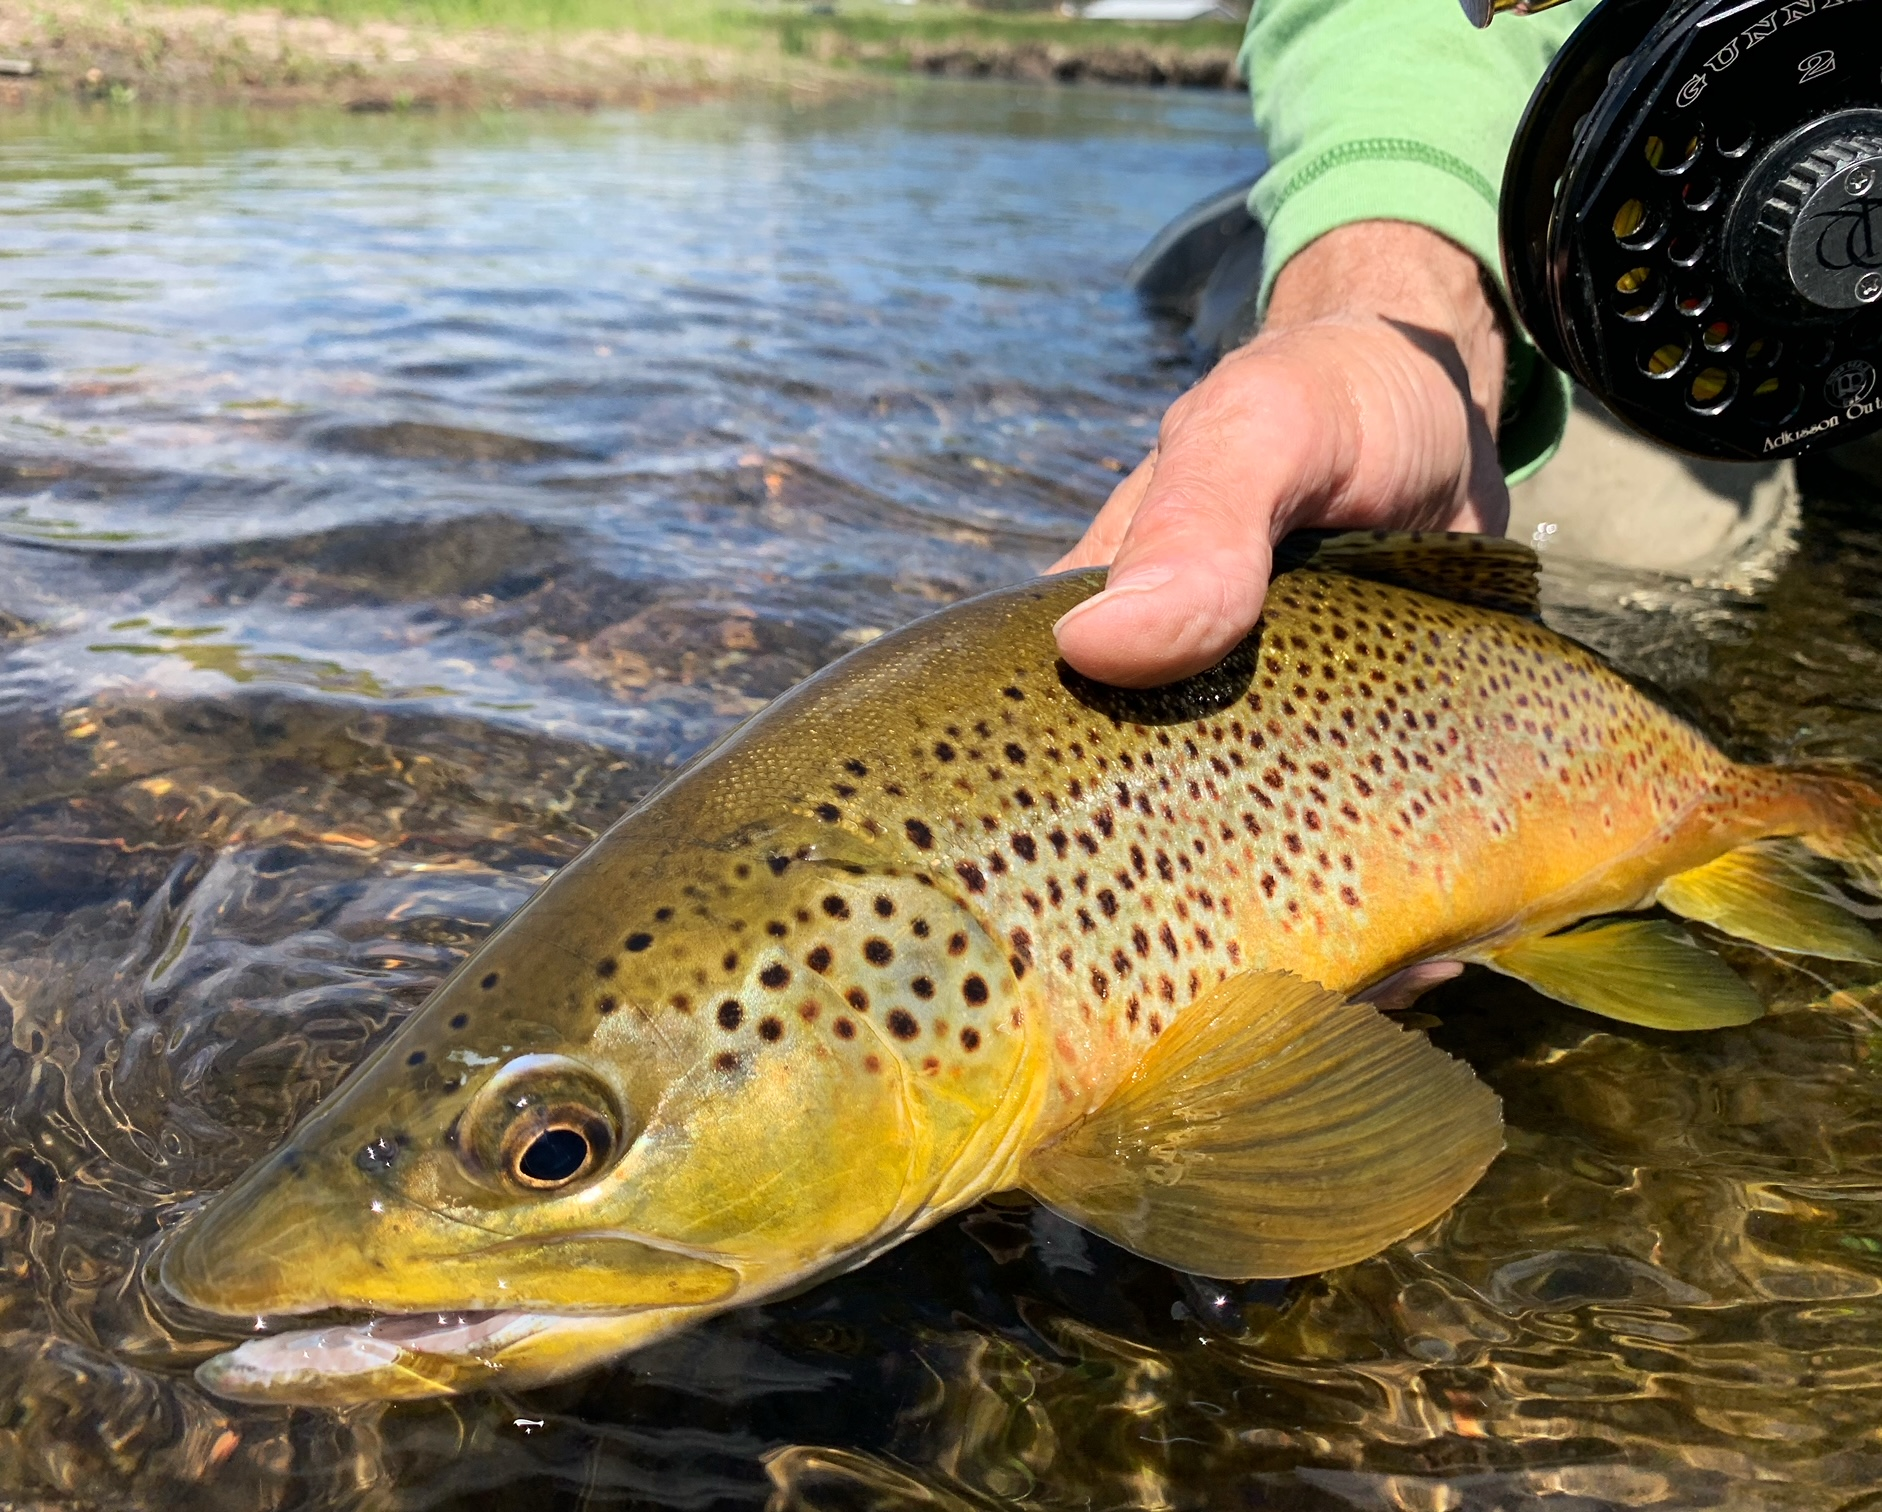 Private water brown trout caught on a dry fly.